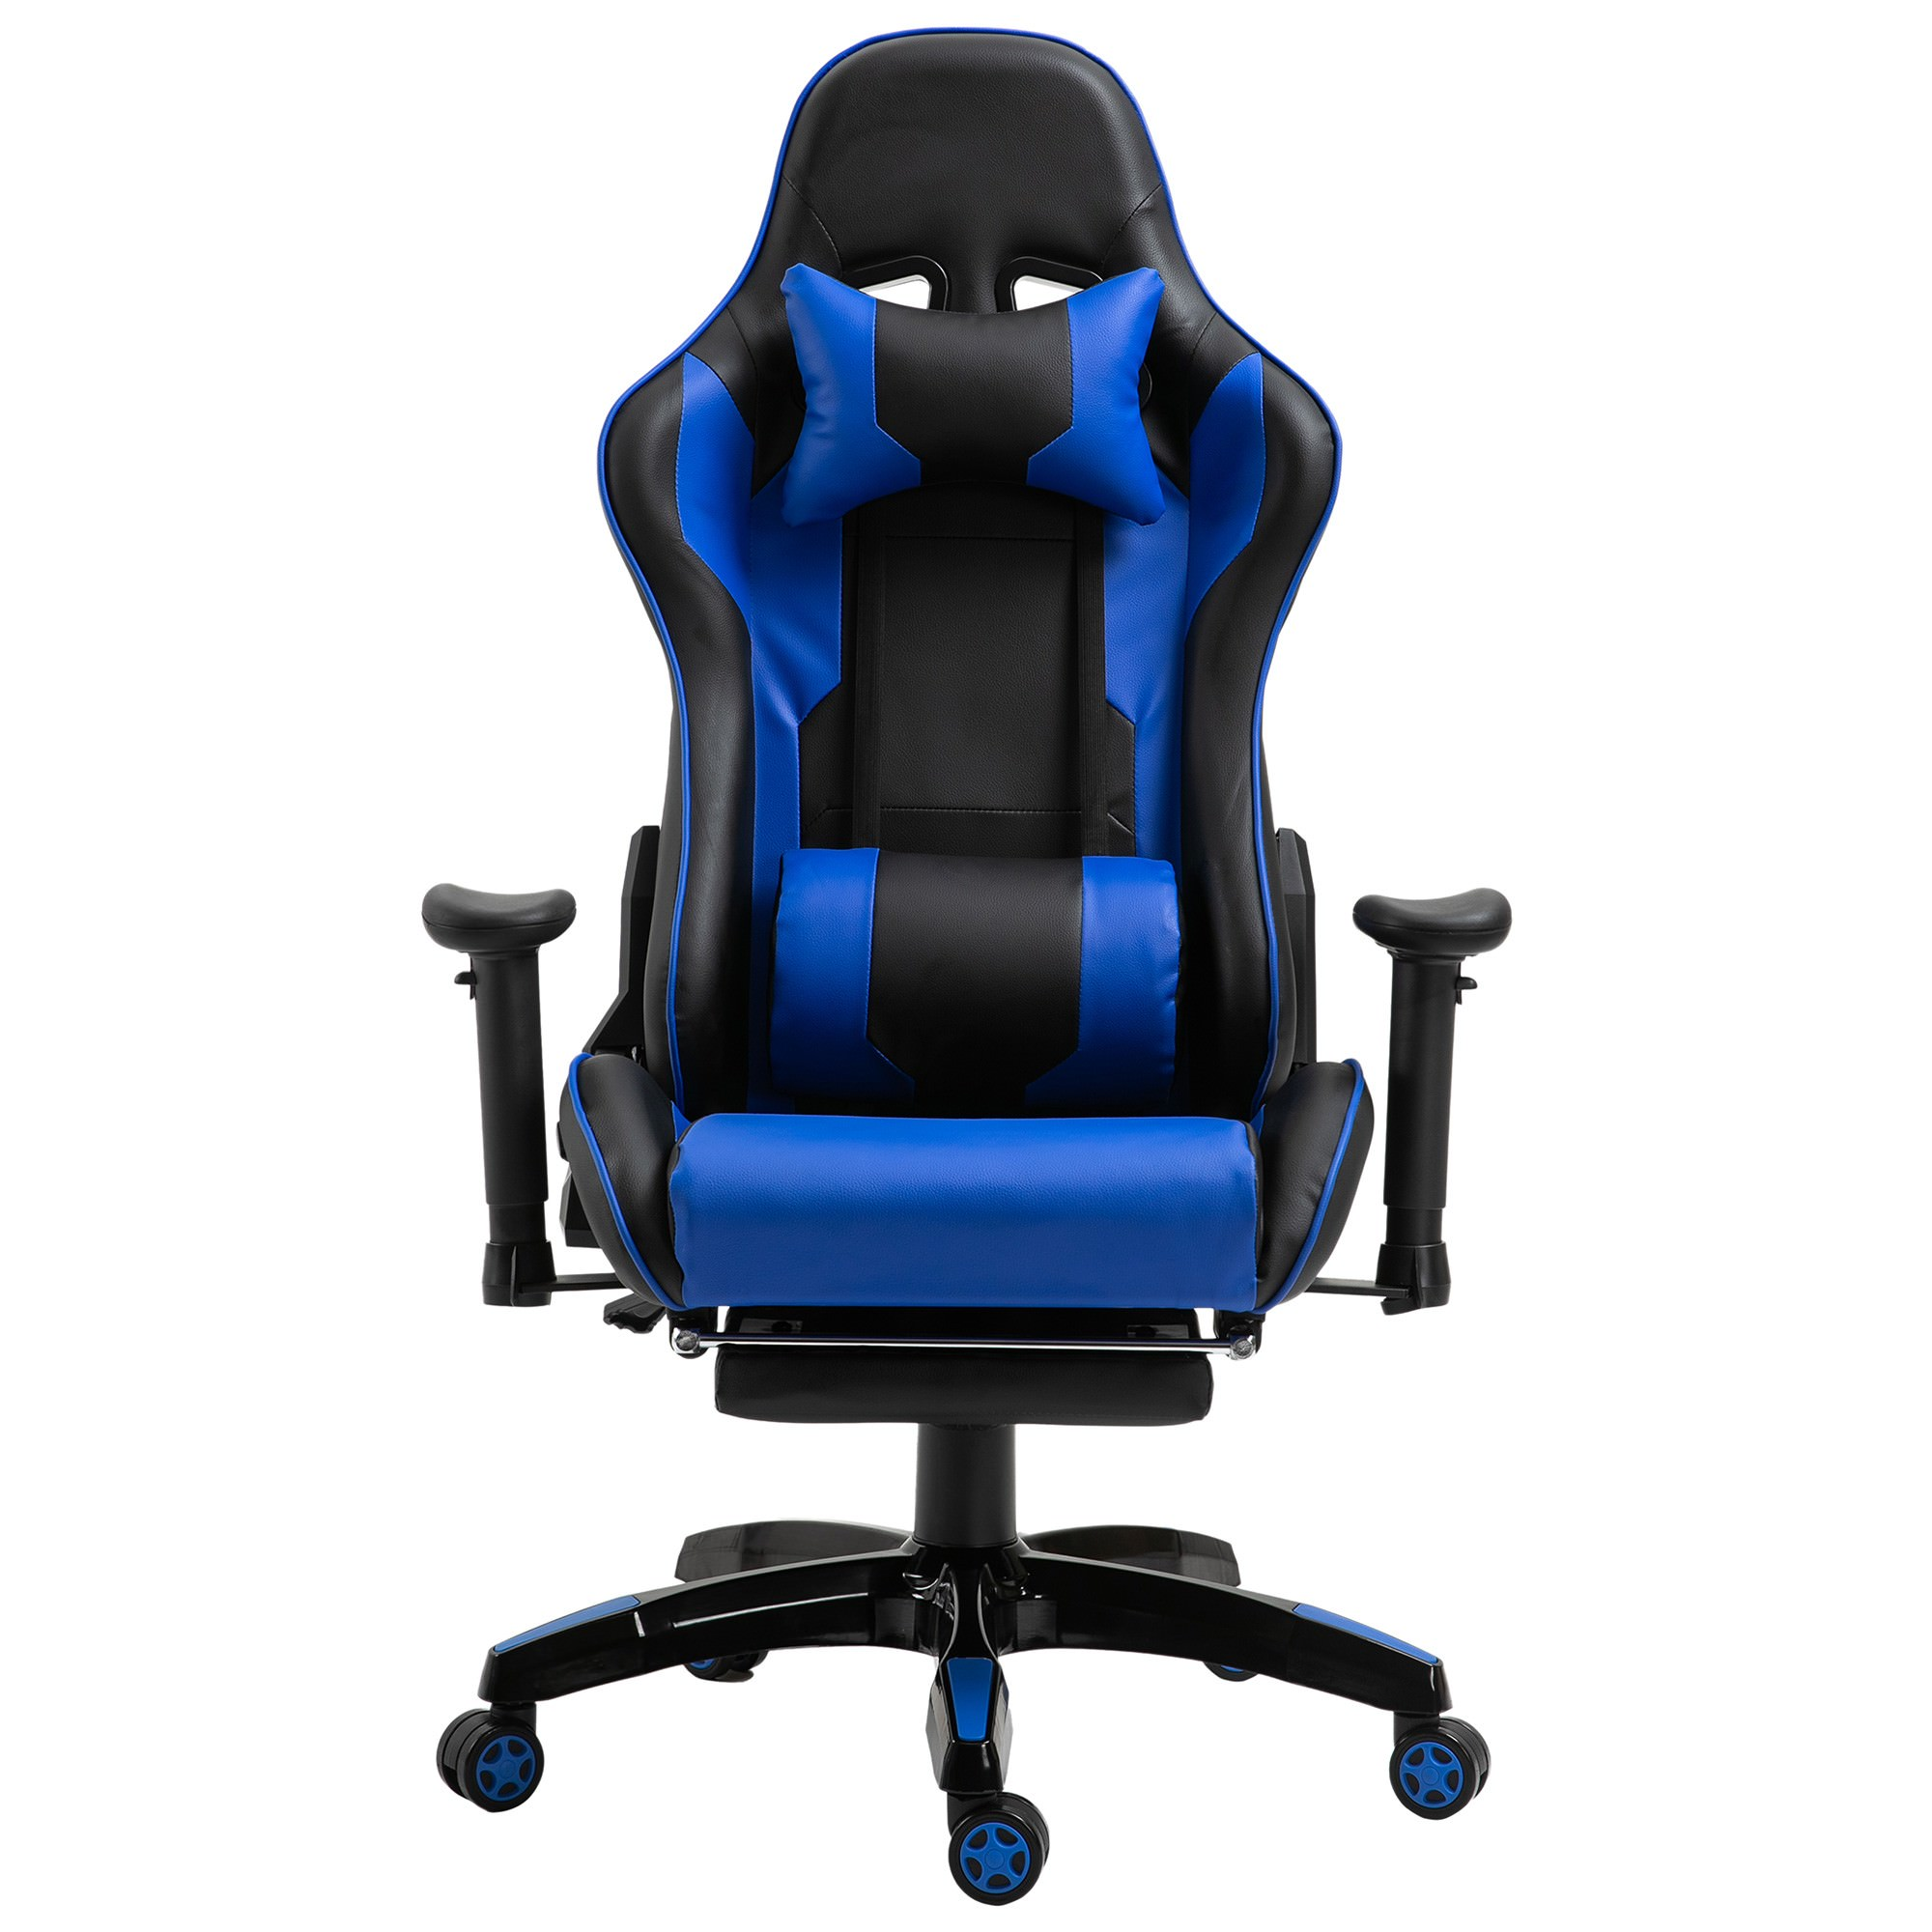 Cybertan PU Leather Gaming Chair with Telescopic Footrest, Black / Blue